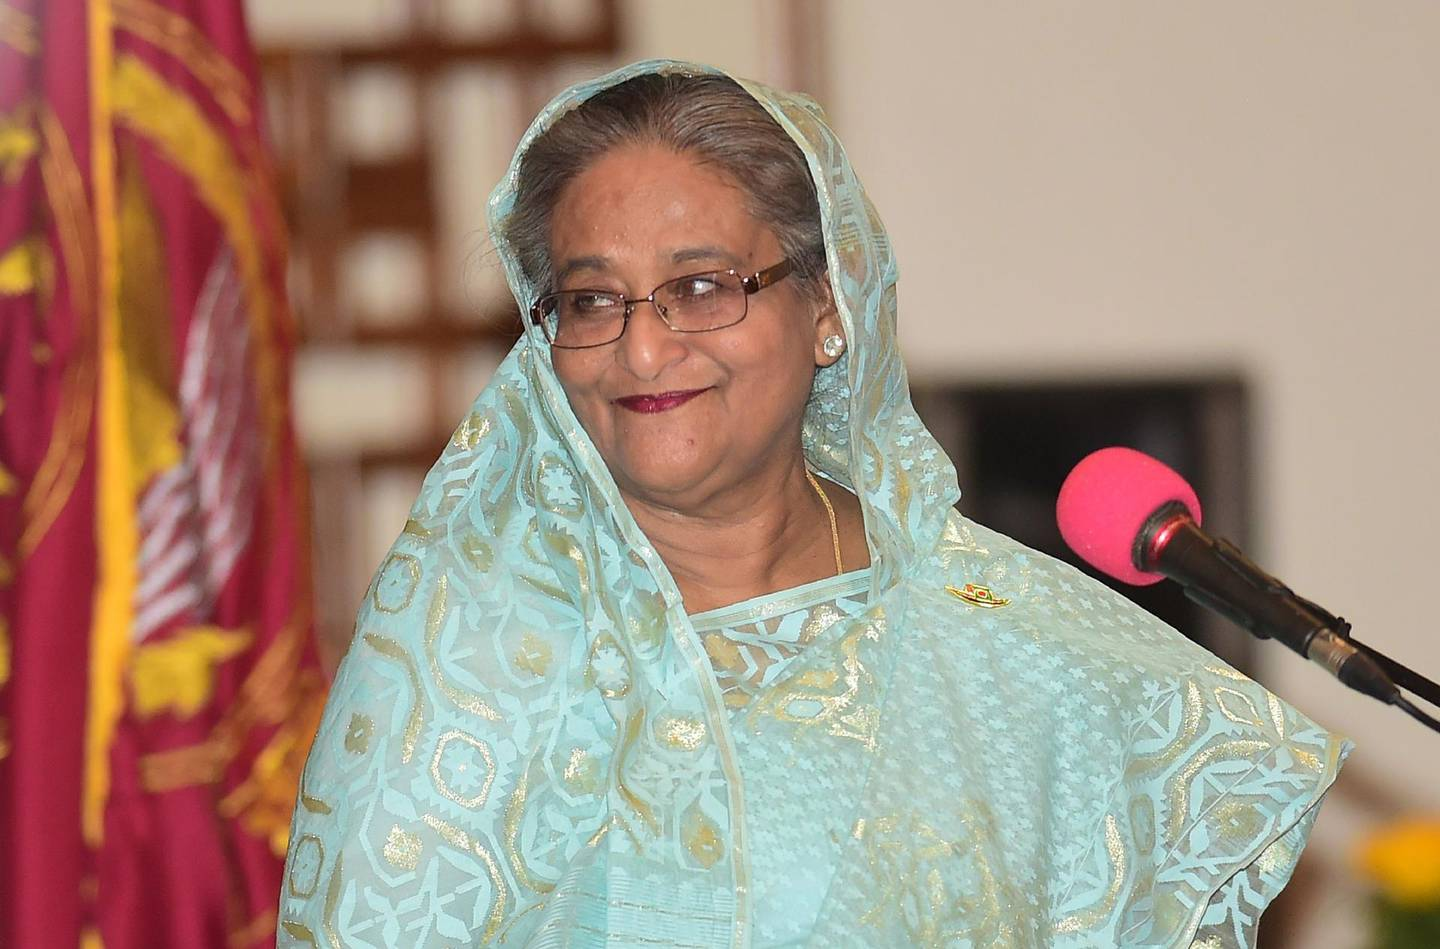 Sheikh Hasina smiles as she is sworn in for her fourth spell as Bangladesh's prime minister at the Presidential Palace in Dhaka on January 7, 2019. Sheikh Hasina was sworn in as Bangladesh's prime minister for a record fourth term January 7 after a crushing election victory marred by deadly violence and claims of widespread rigging.  / AFP / Munir UZ ZAMAN